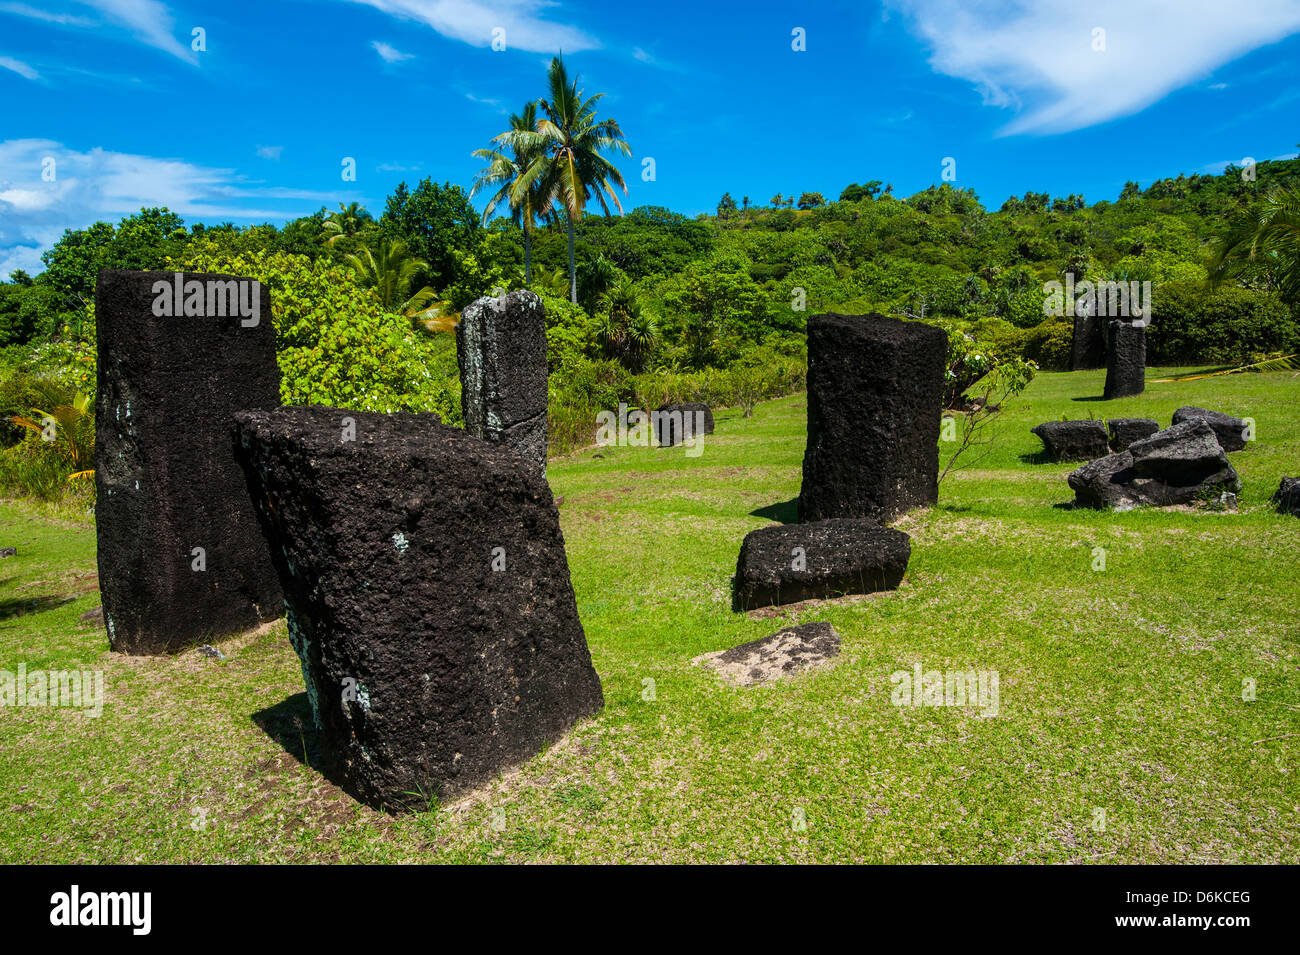 Basalt monoliths known as Badrulchau, Island of Babeldoab, Palau, Central Pacific, Pacific - Stock Image